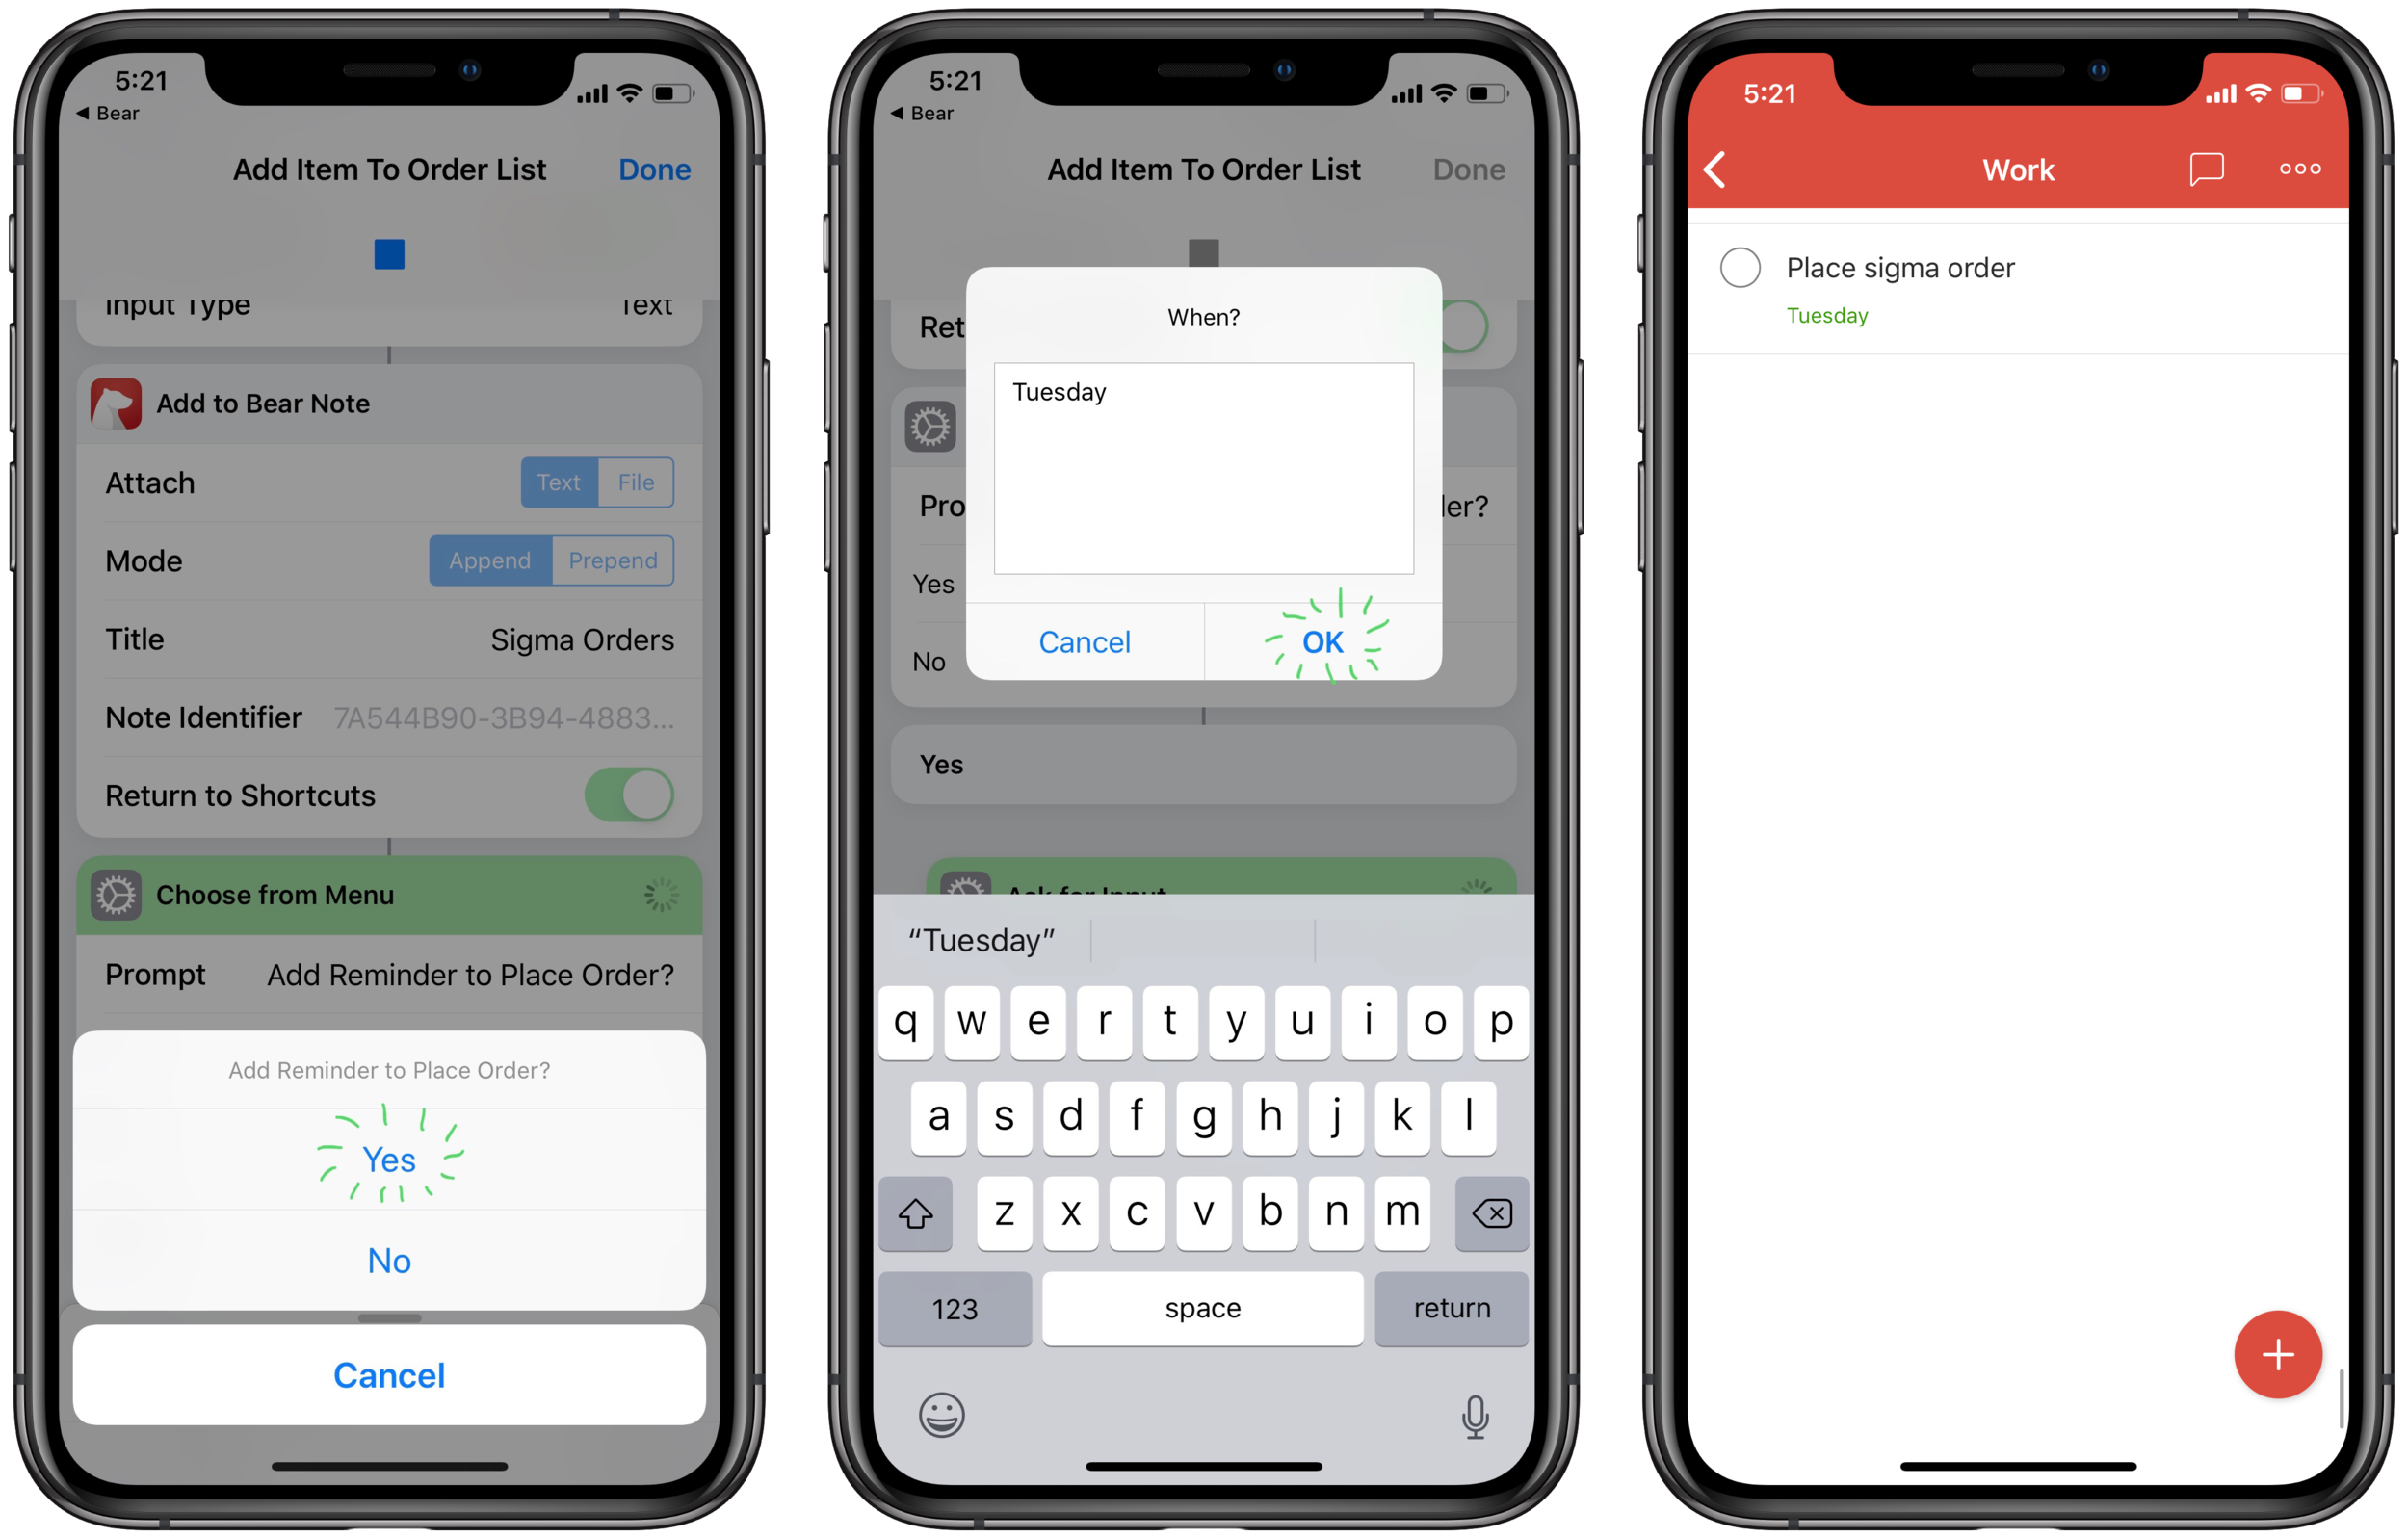 Speeding Up Consumables Orders with Shortcuts on iOS — Rampant